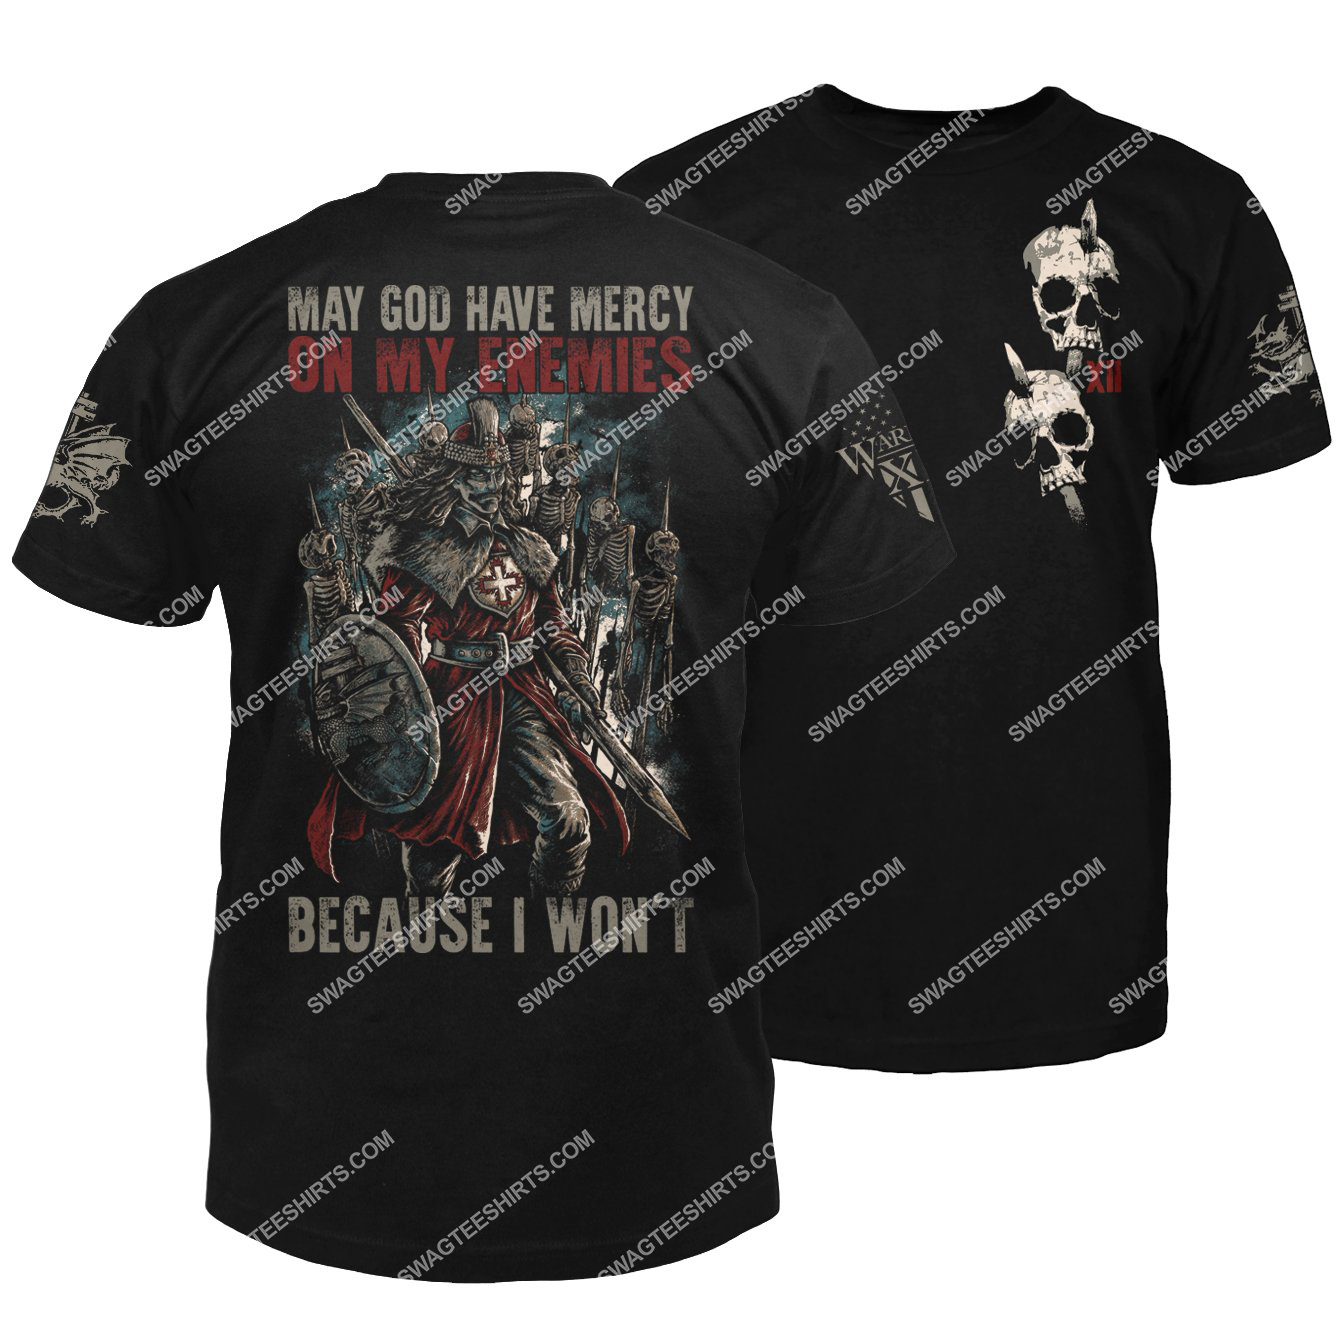 may God have mercy on my enemies because i won't vlad the impaler halloween shirt 1